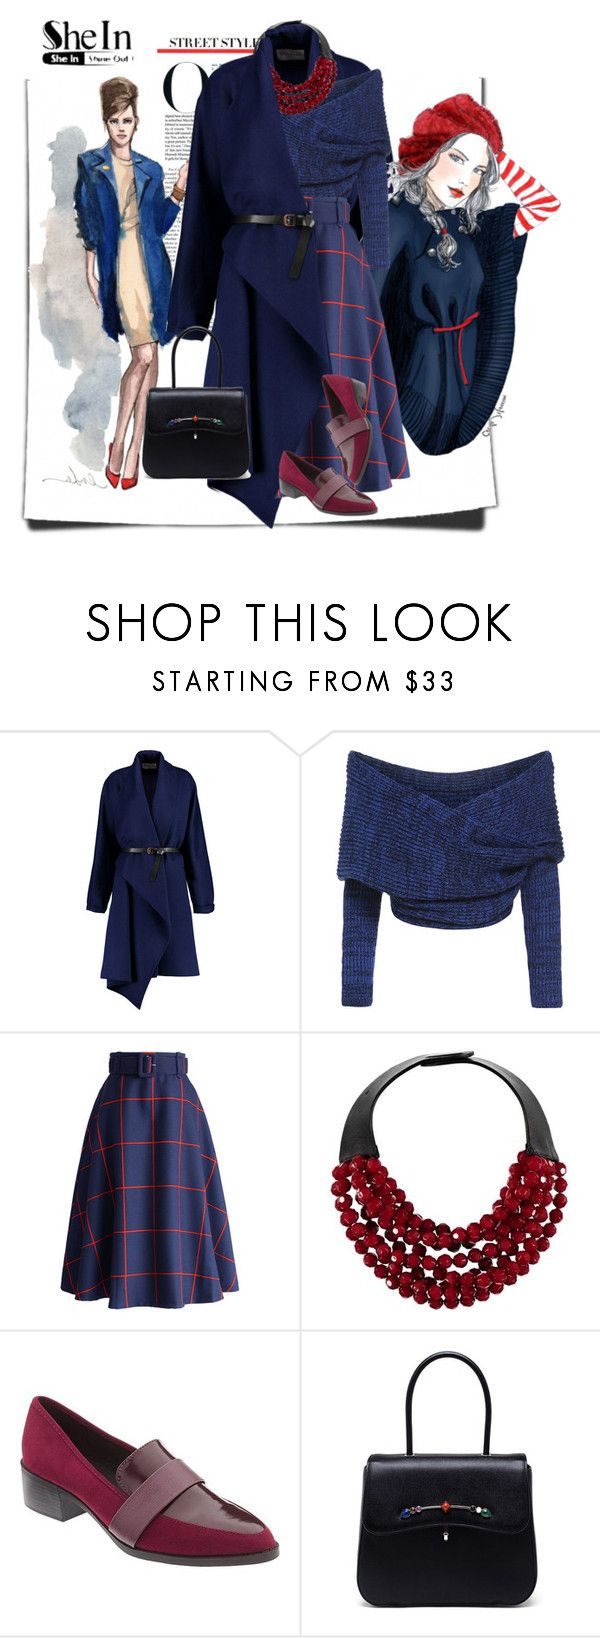 """""""108"""" by treysi-whitney ❤ liked on Polyvore featuring Vionnet, Chicwish, Fairchild Baldwin, Old Navy, Pramma, women's clothing, women, female, woman and misses"""